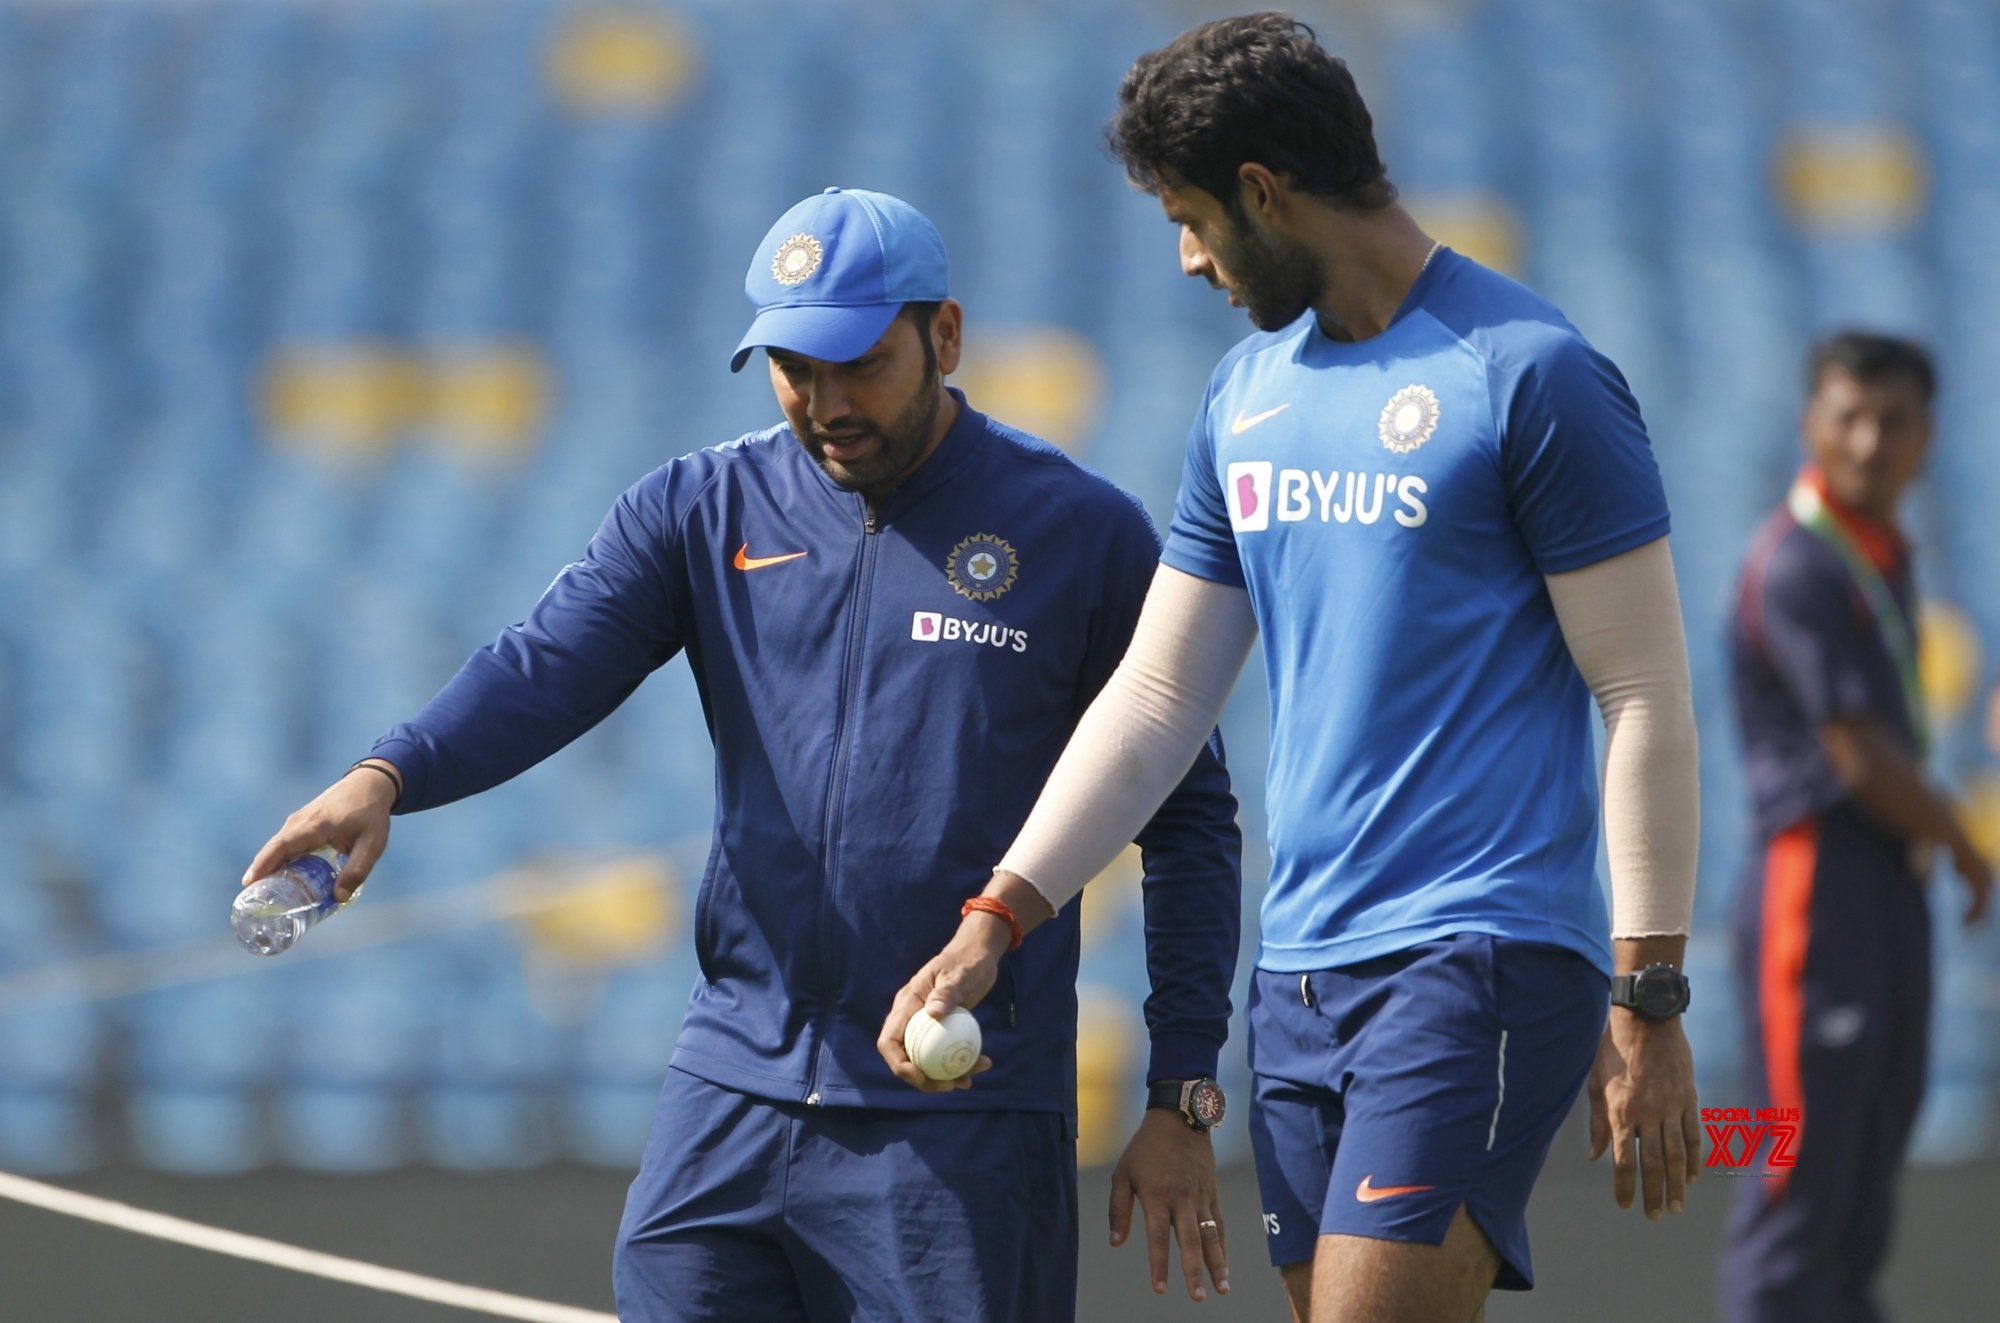 Nagpur: India practice session (Batch - 2) #Gallery